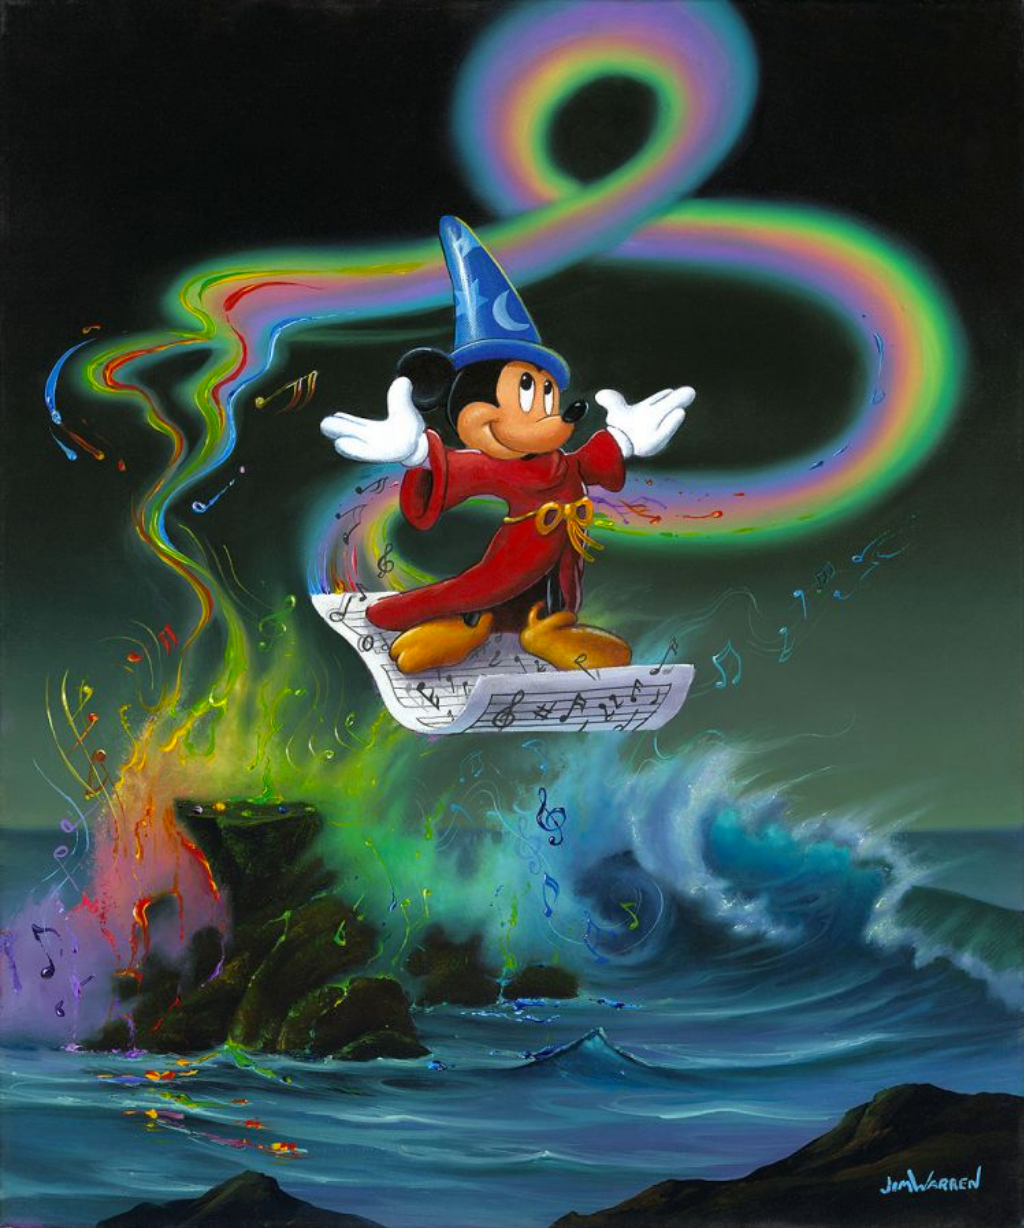 Wizard Mickey in a red robe and a blue hat is standing on a piece of floating sheet music. Below him, a rough sea splashing over large rocks. Trailing behind the music is a rainbow swirling around the piece down into the water, with rainbow colored music notes dancing around it.